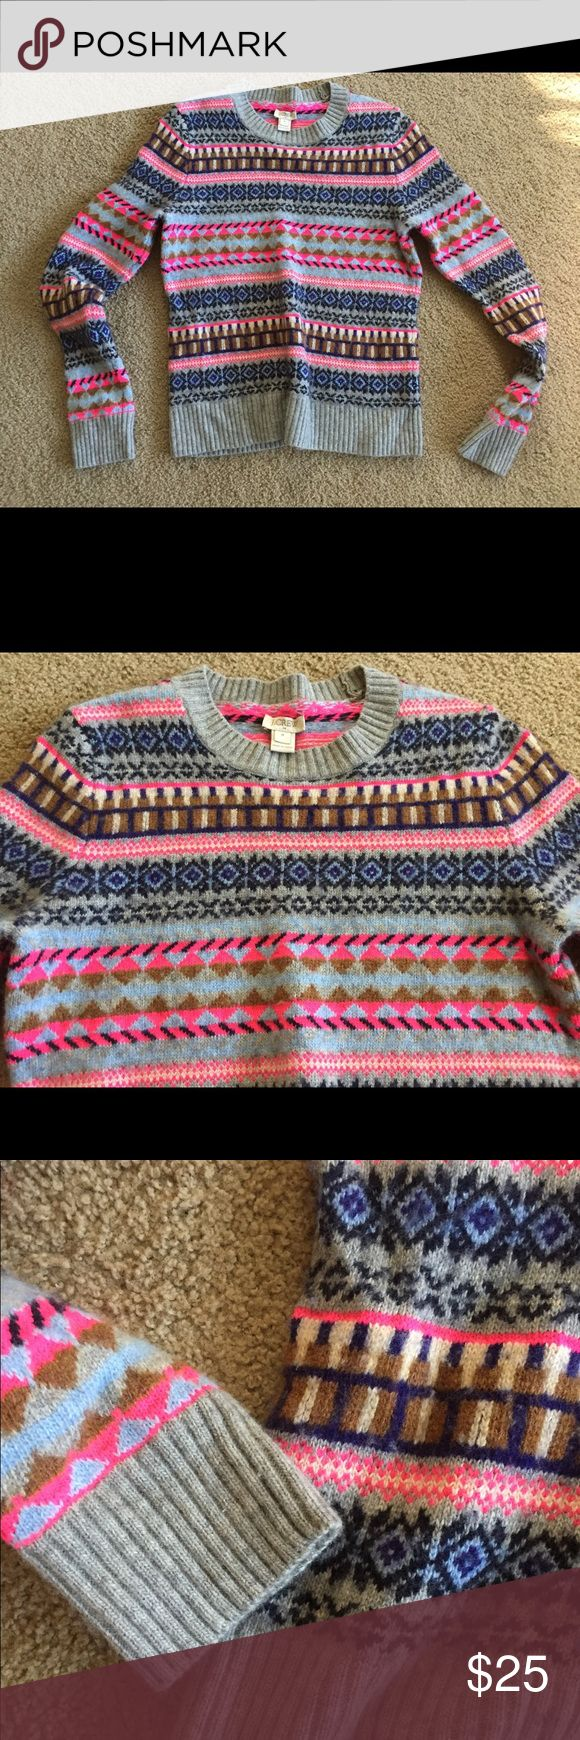 J. Crew Sweater Gray neon Aztec Tribal Crew Neck Women's size MEDIUM J.Crew wool blend sweater with Aztec / Tribal design. Gray with neon pink and blue design. Unique design, Crew neck. Outlet item! Tag is starting to come off but the sweater itself is in excellent condition! Wonderful addition to a fall / winter wardrobe J. Crew Sweaters Crew & Scoop Necks